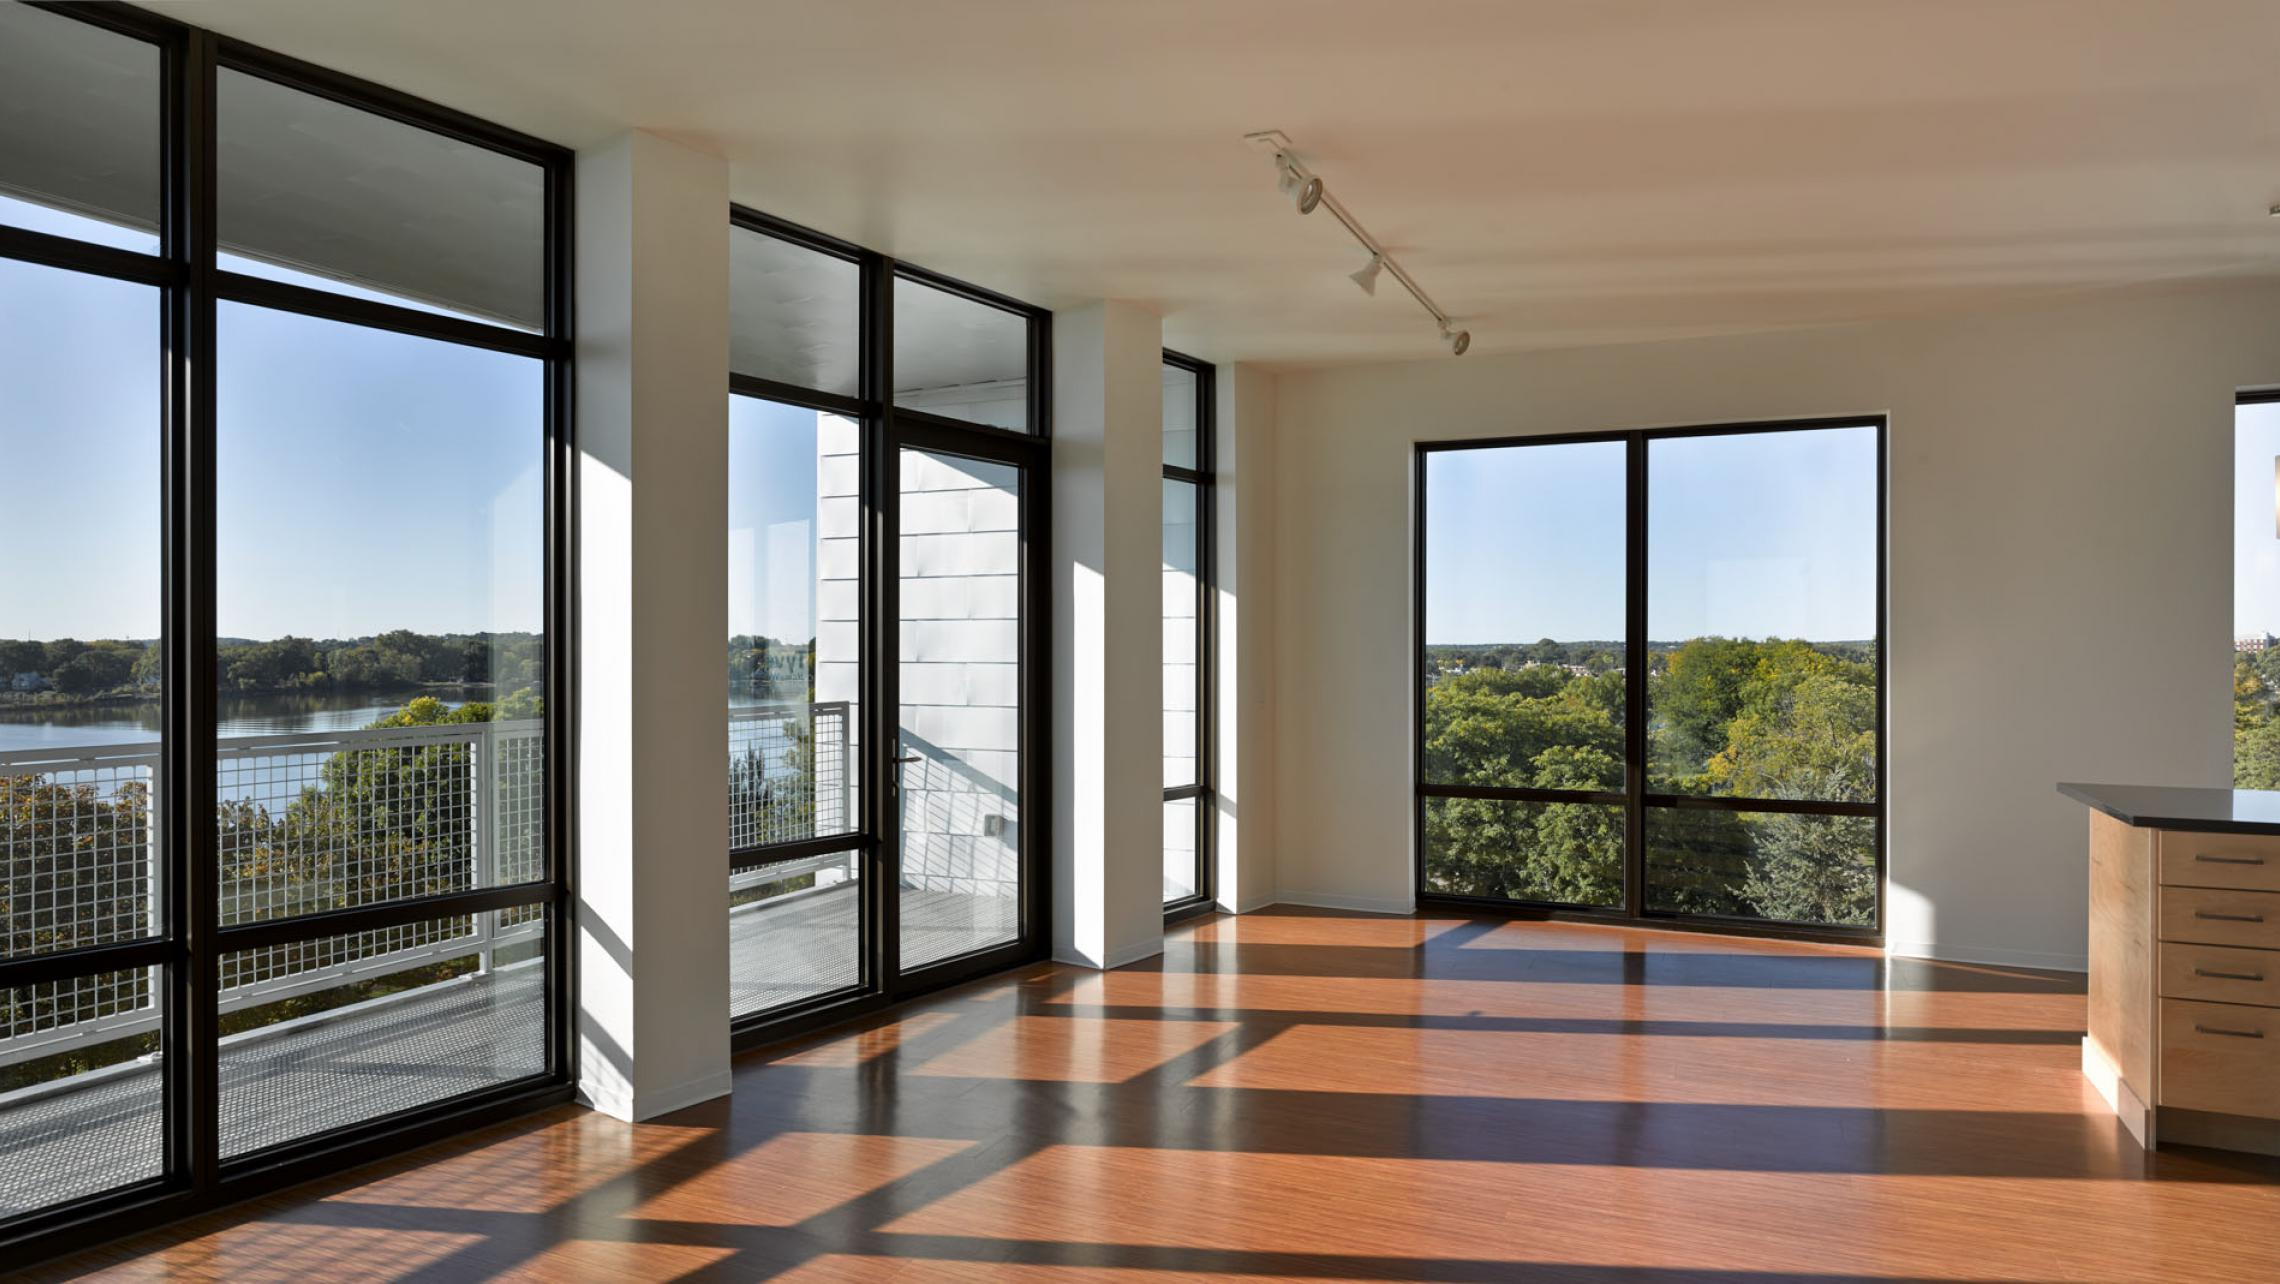 ULI Seven27 Apartments - Living room with lake view and direct sunlight